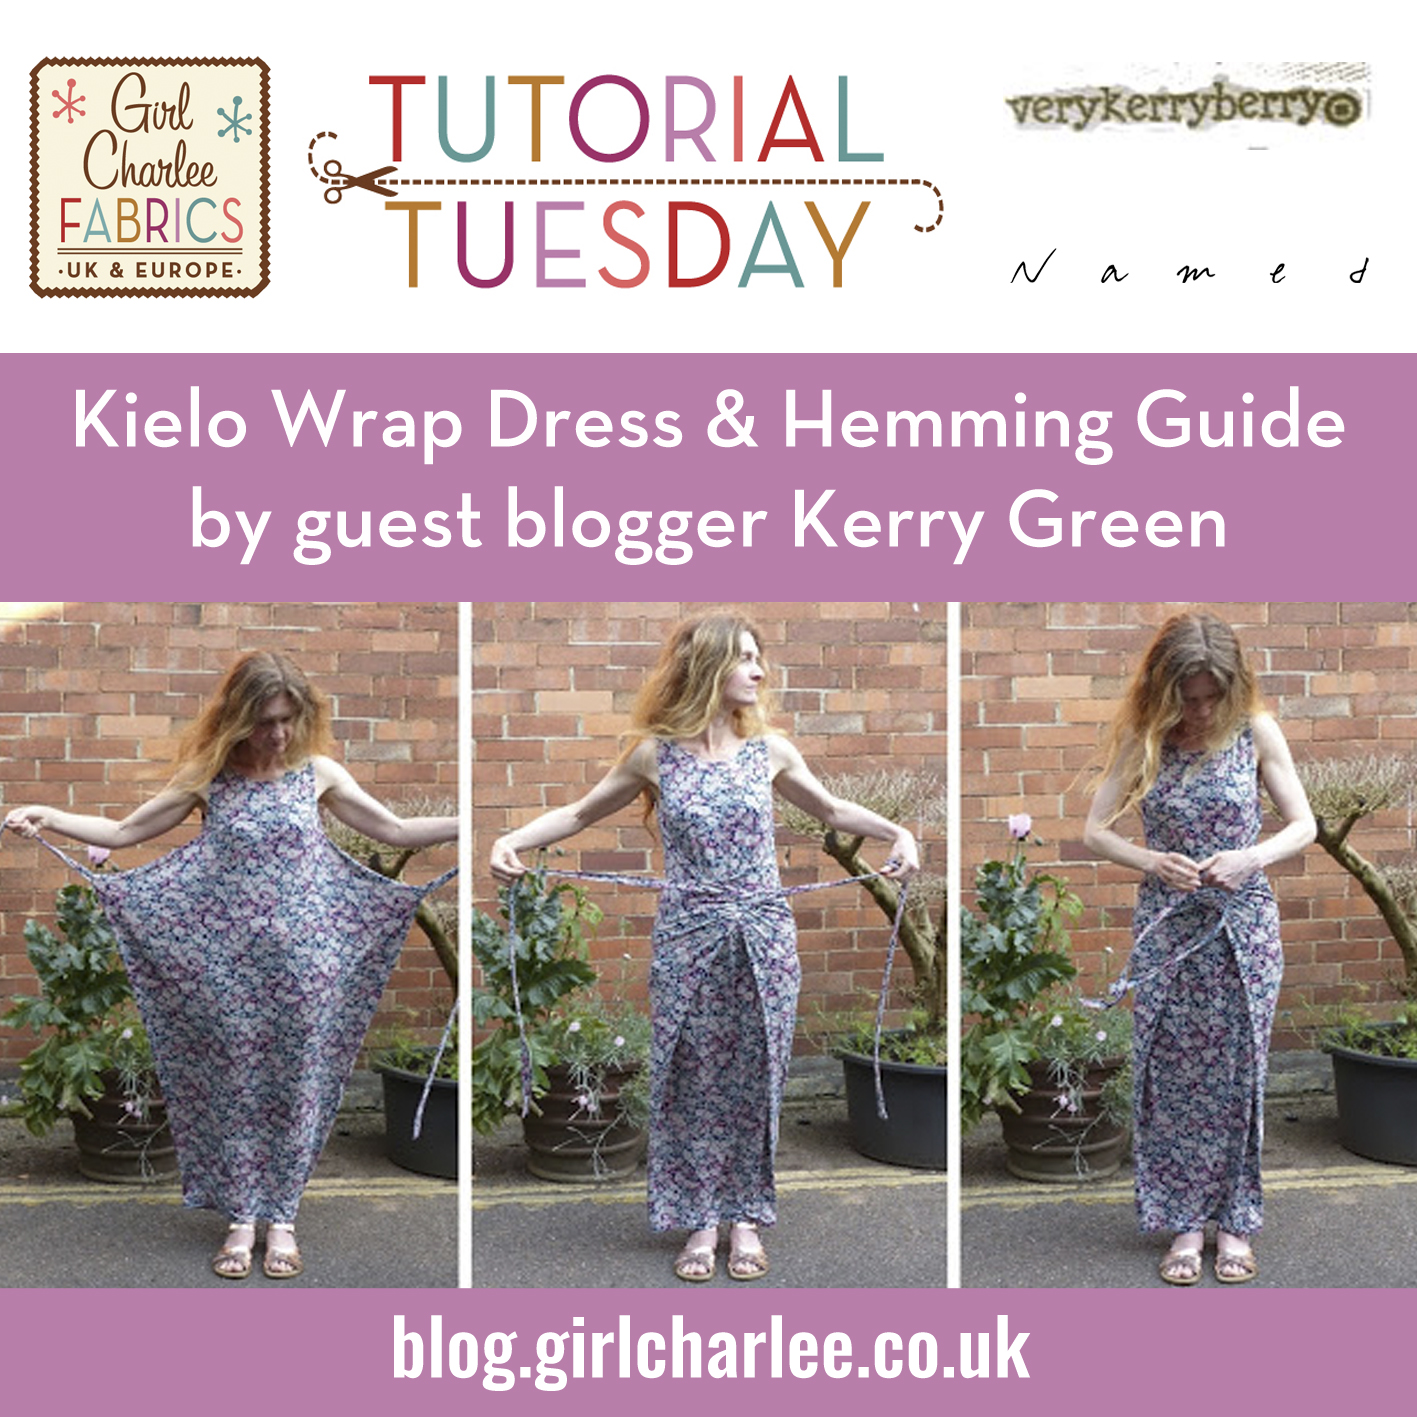 Girl Charlee Fabrics Uk Europe Tutorial Tuesday Guest Blog By